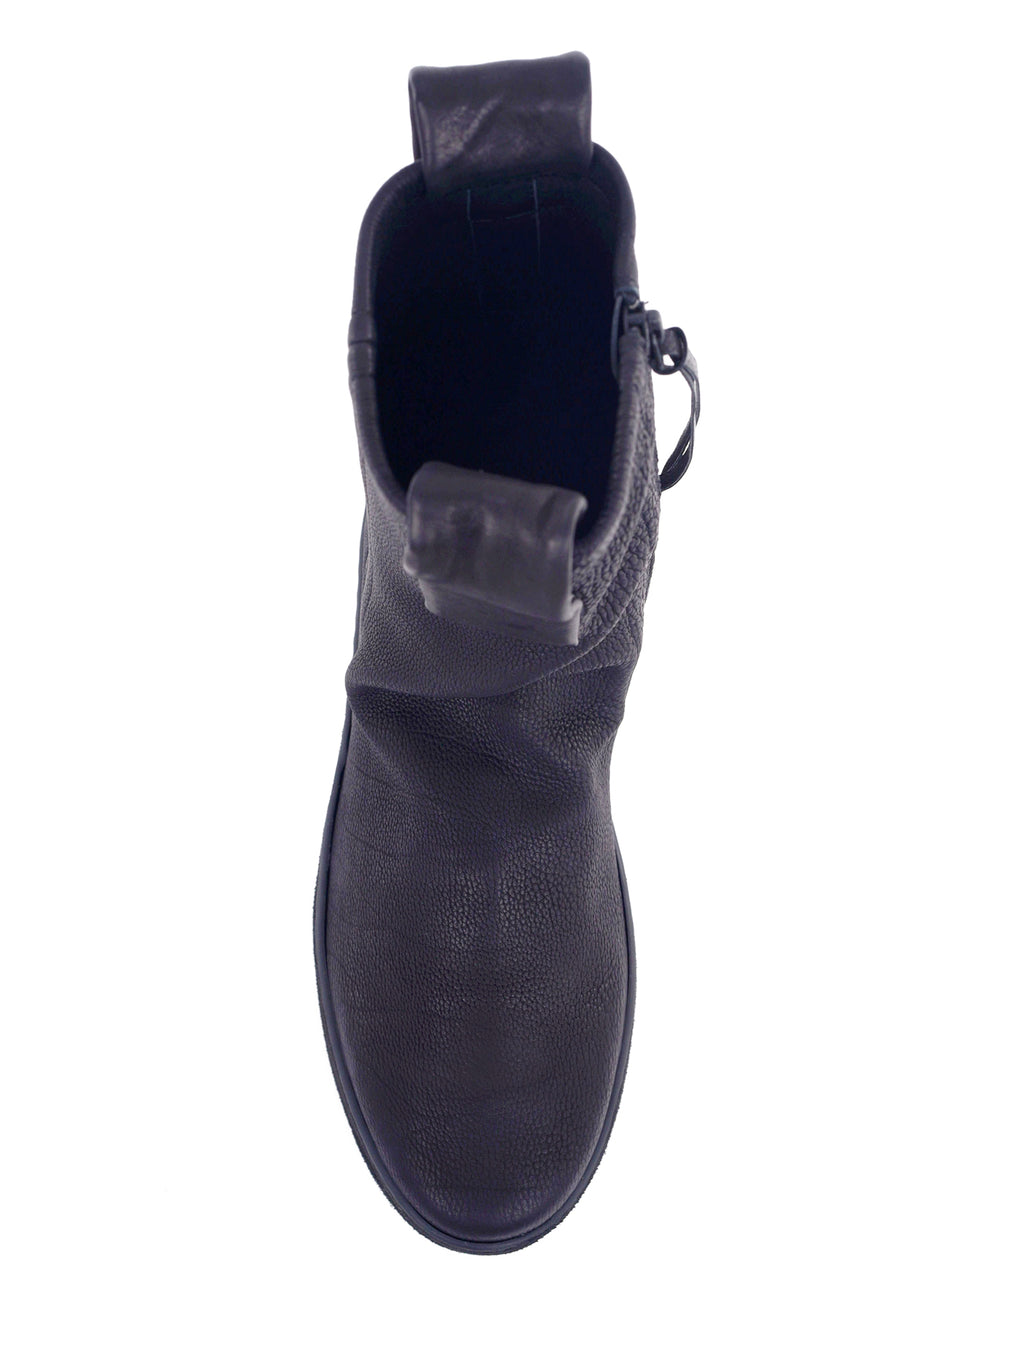 Coclico Zerit Booties, Kent Black